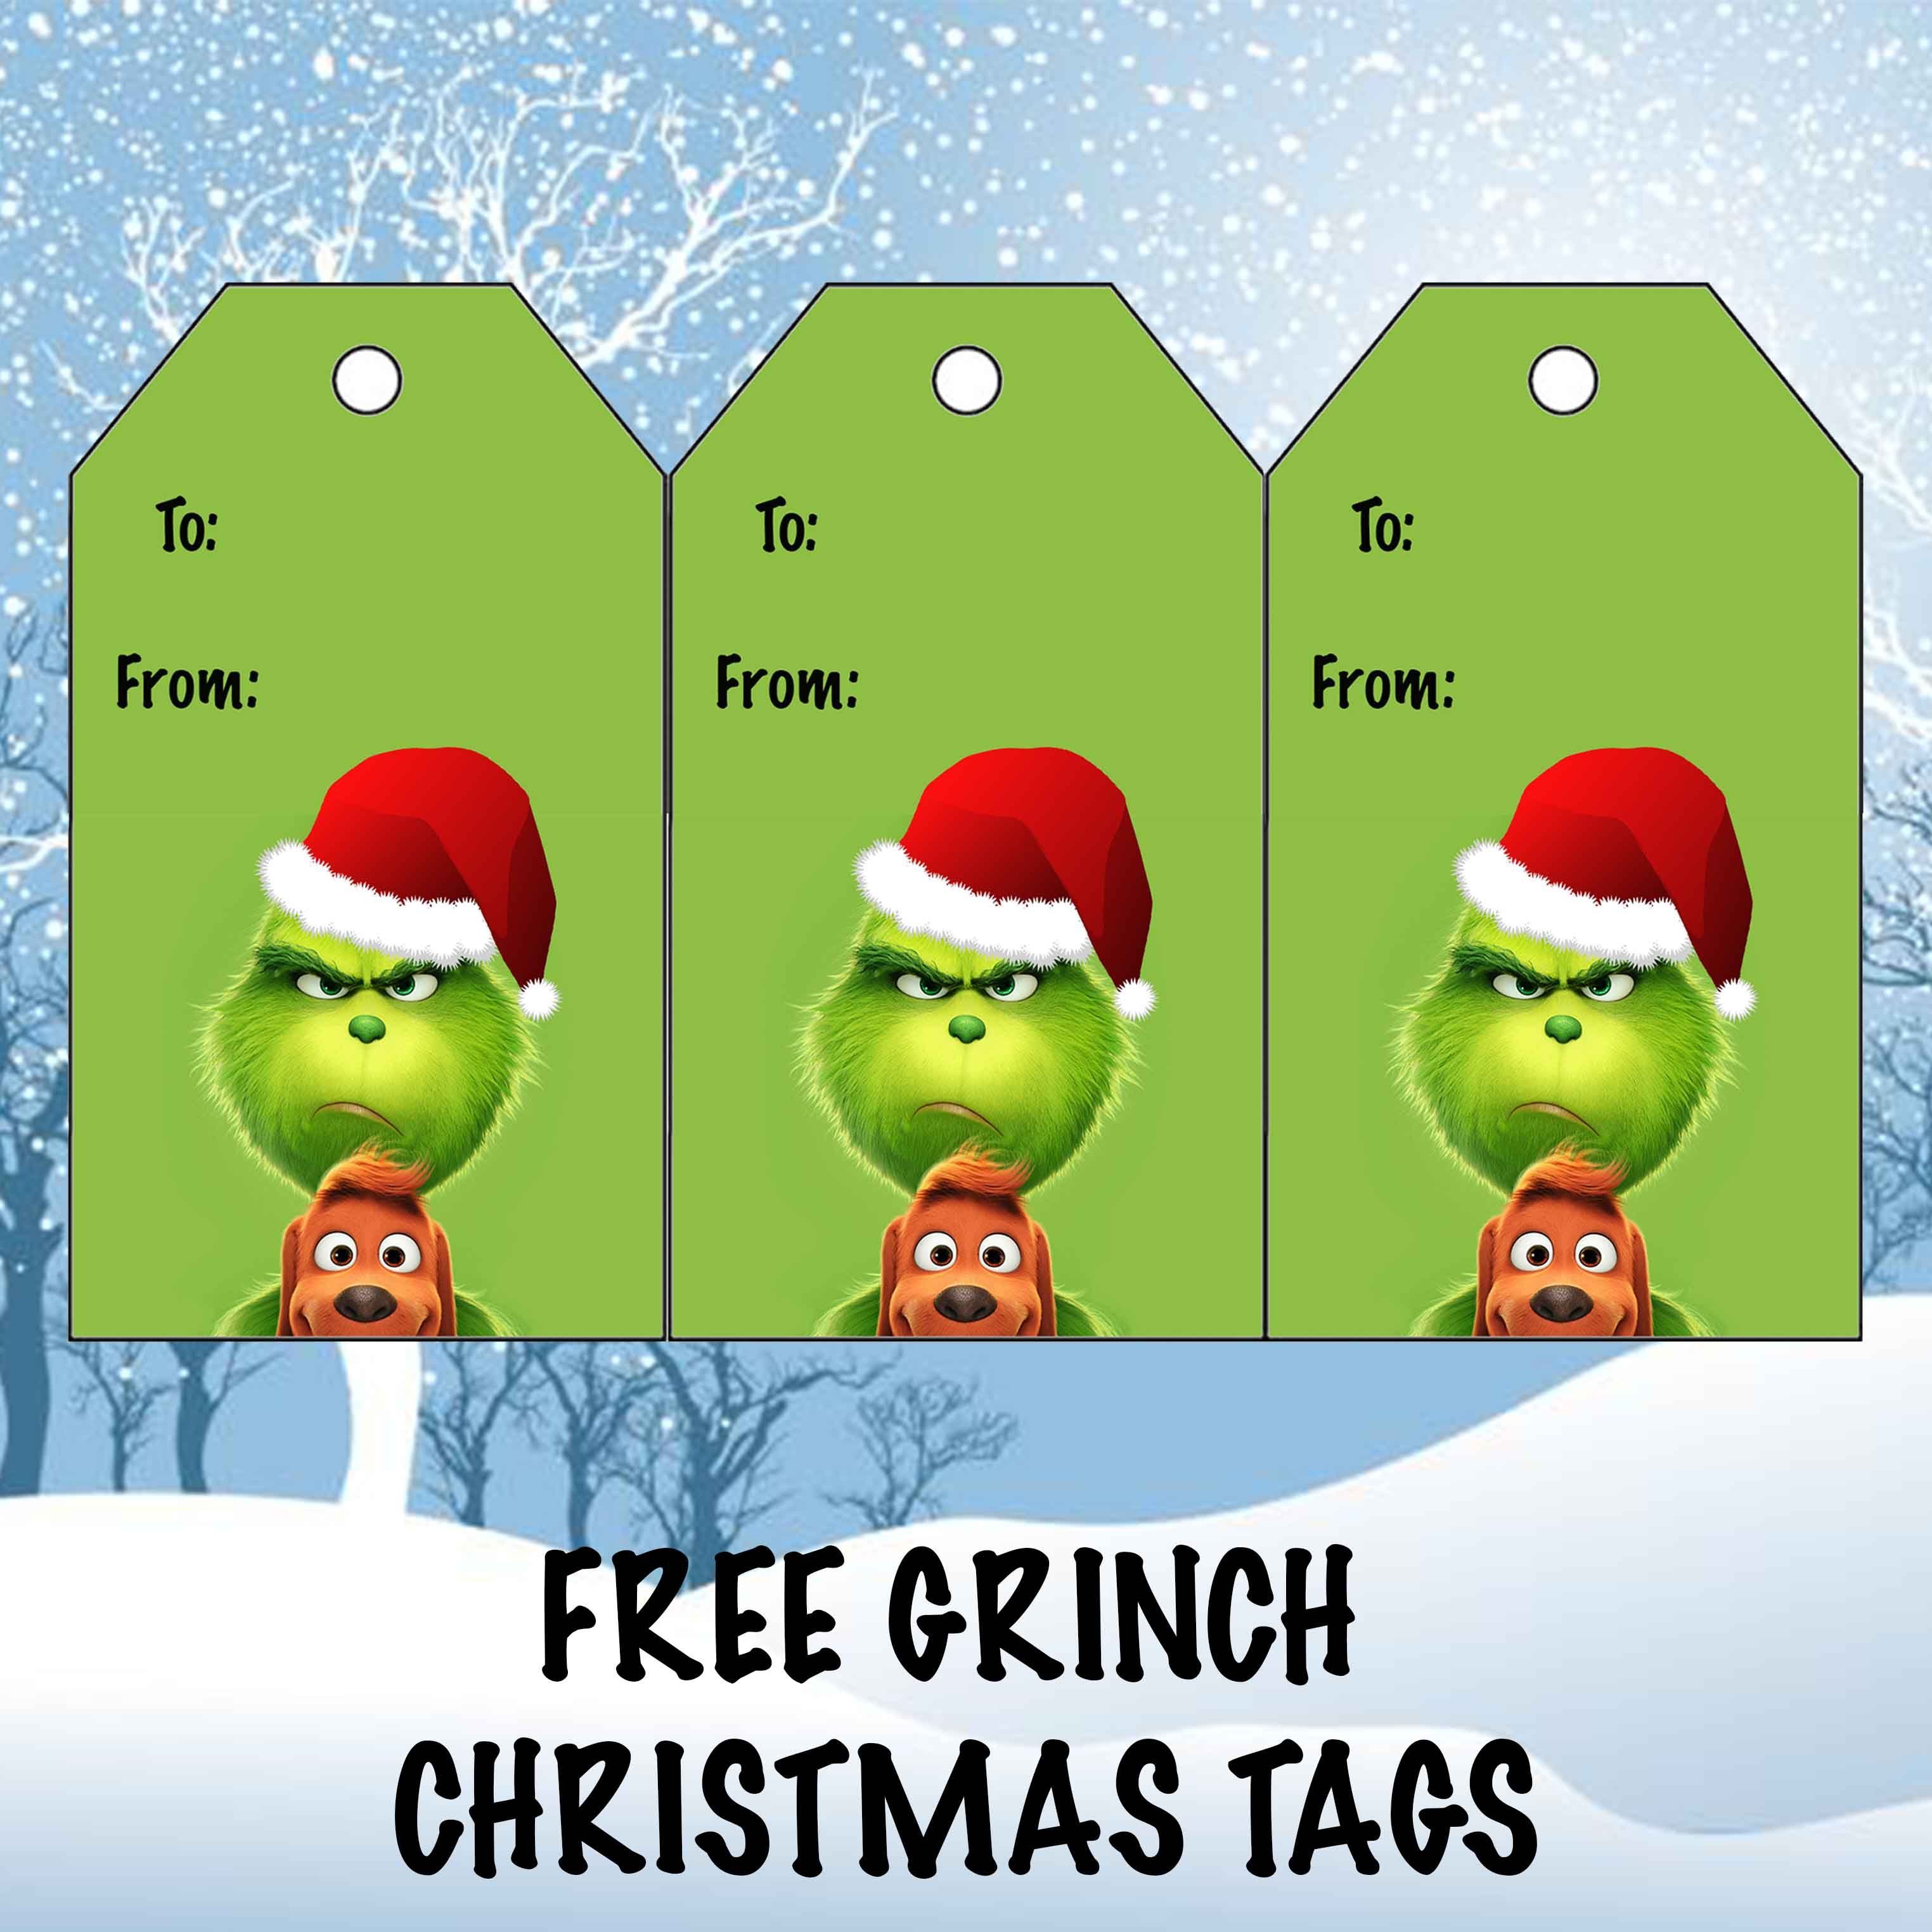 Free Grinch Christmas Gift Tags Grinch Christmas Decorations Grinch Christmas Funny Christmas Tags